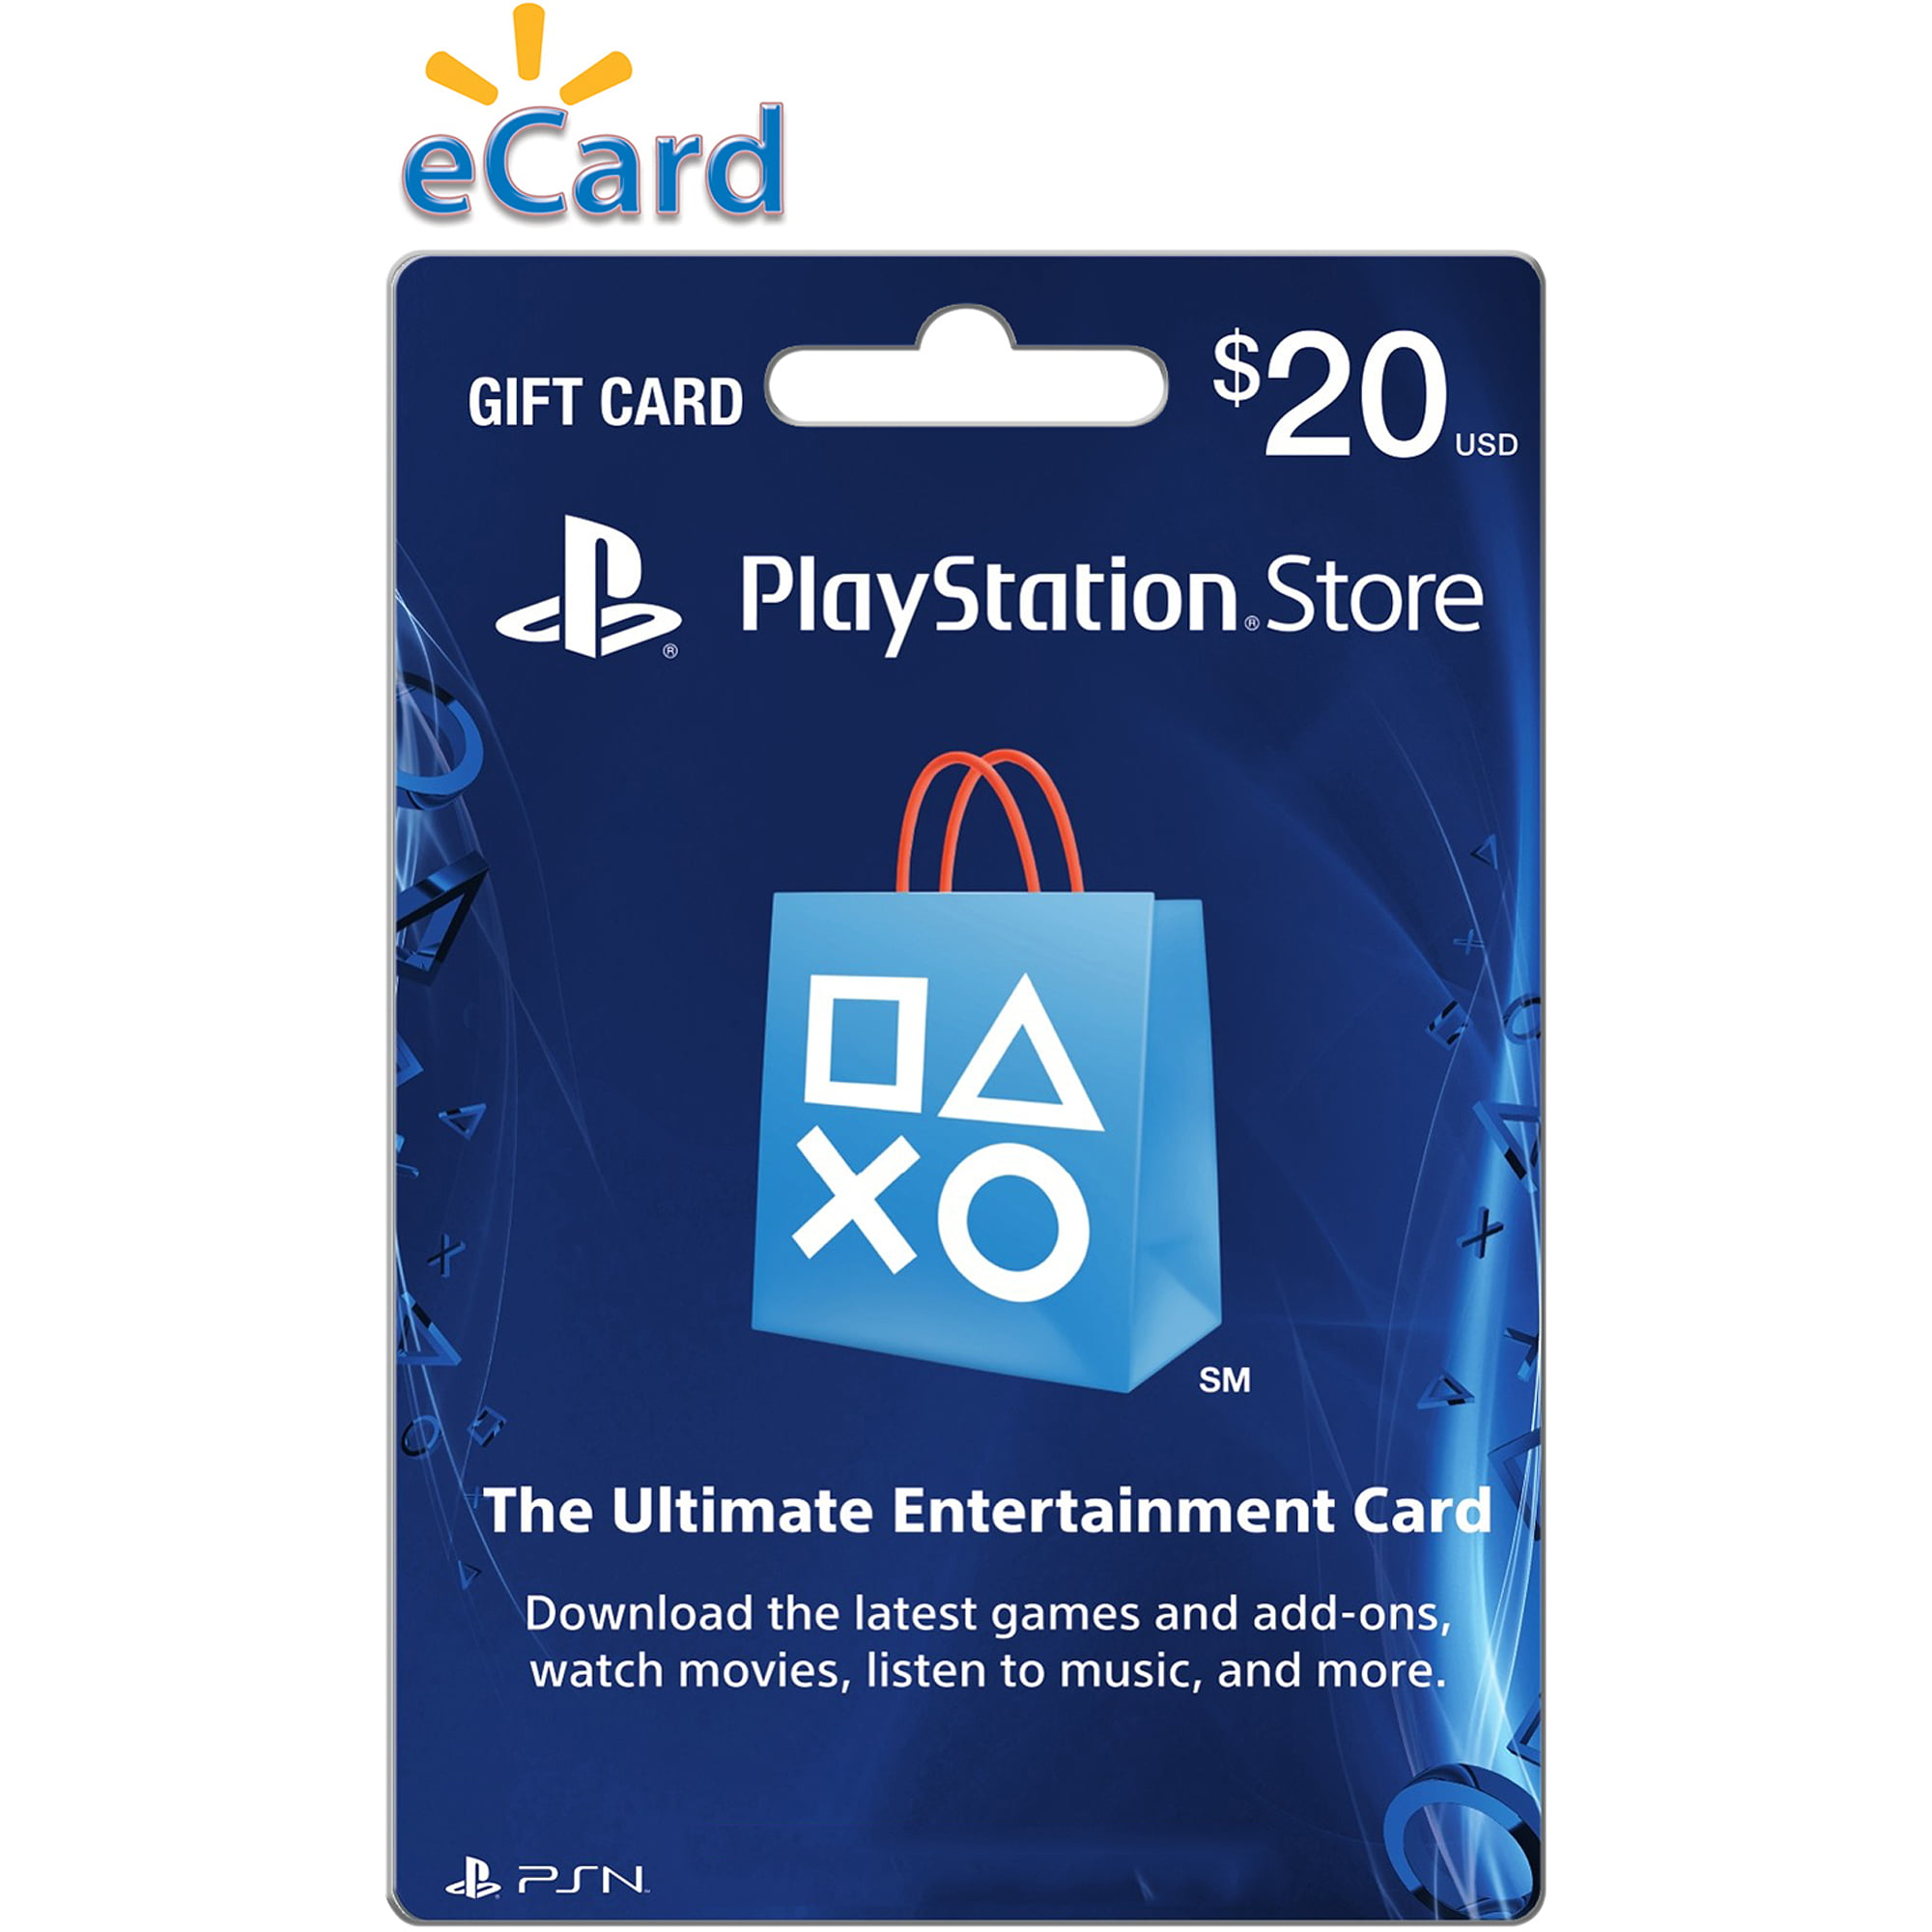 $20 PlayStation Store Gift Card, Sony, [Digital Download], 799366781035 by INTERACTIVE COMMUNICATIONS